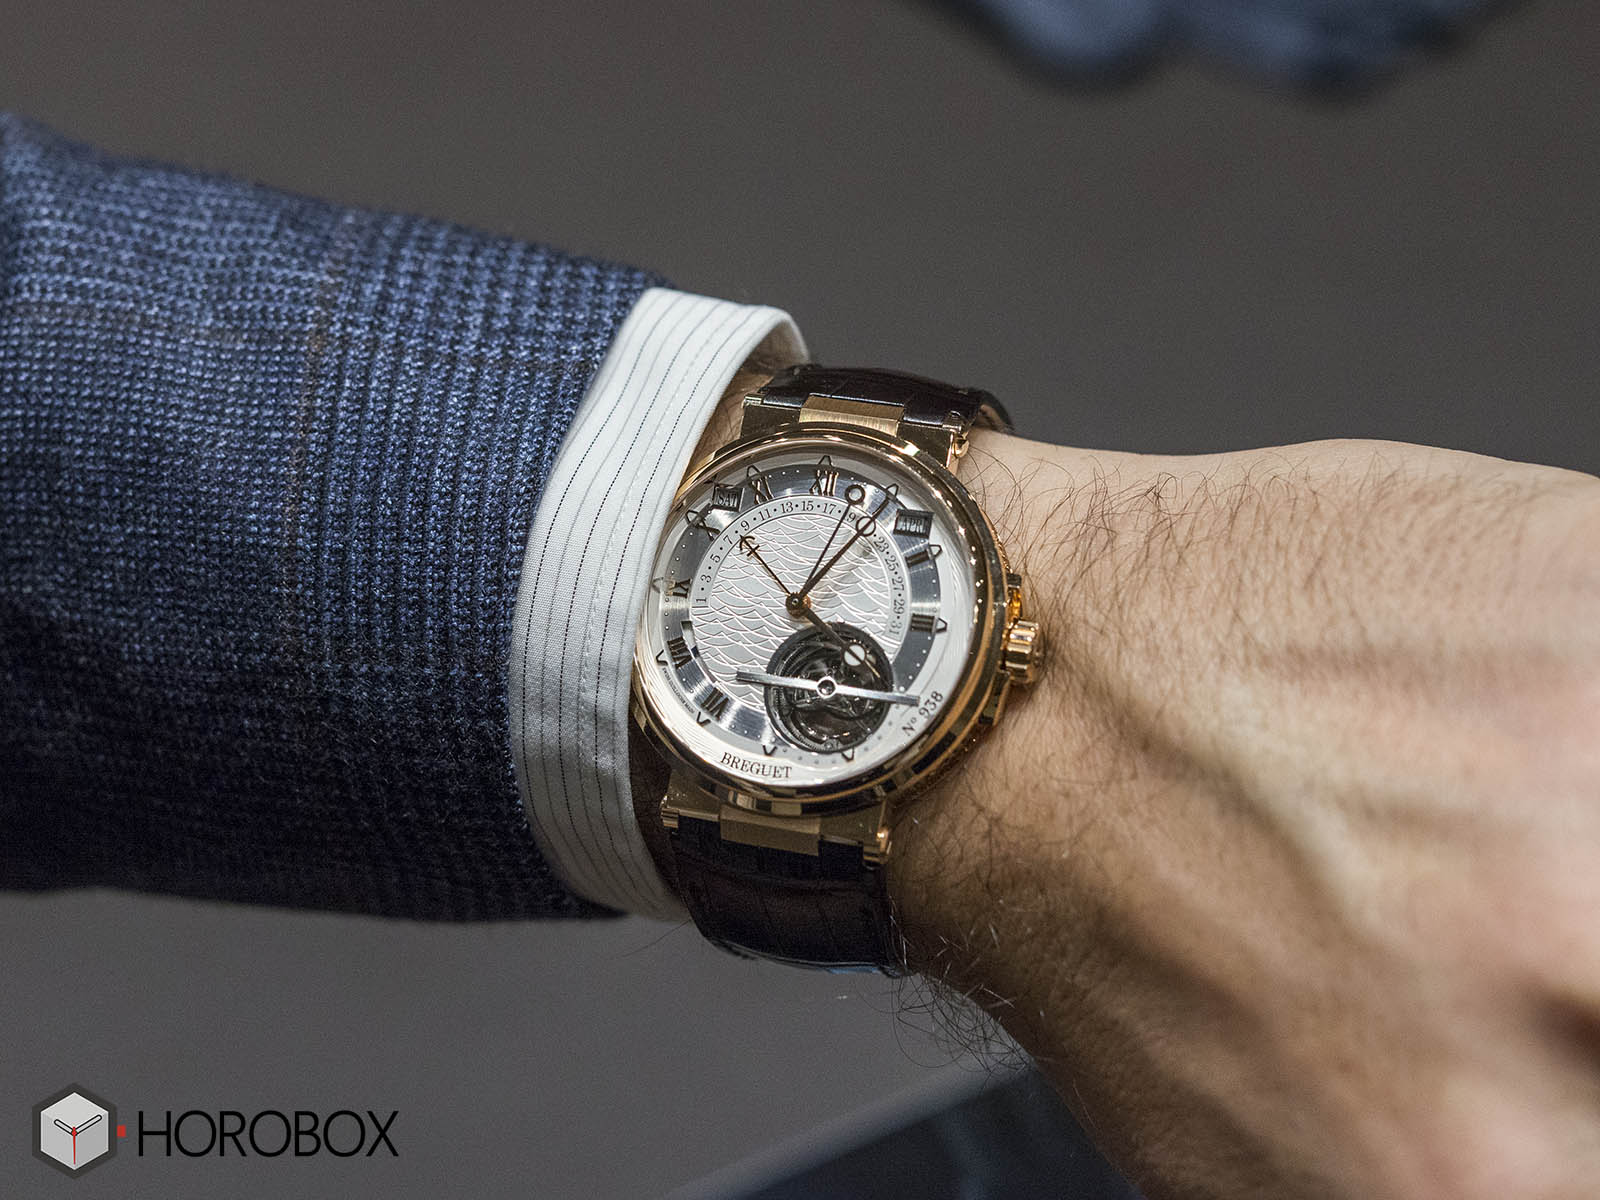 Breguet-Marine-Equation-Marchante-5887-18K-9.jpg